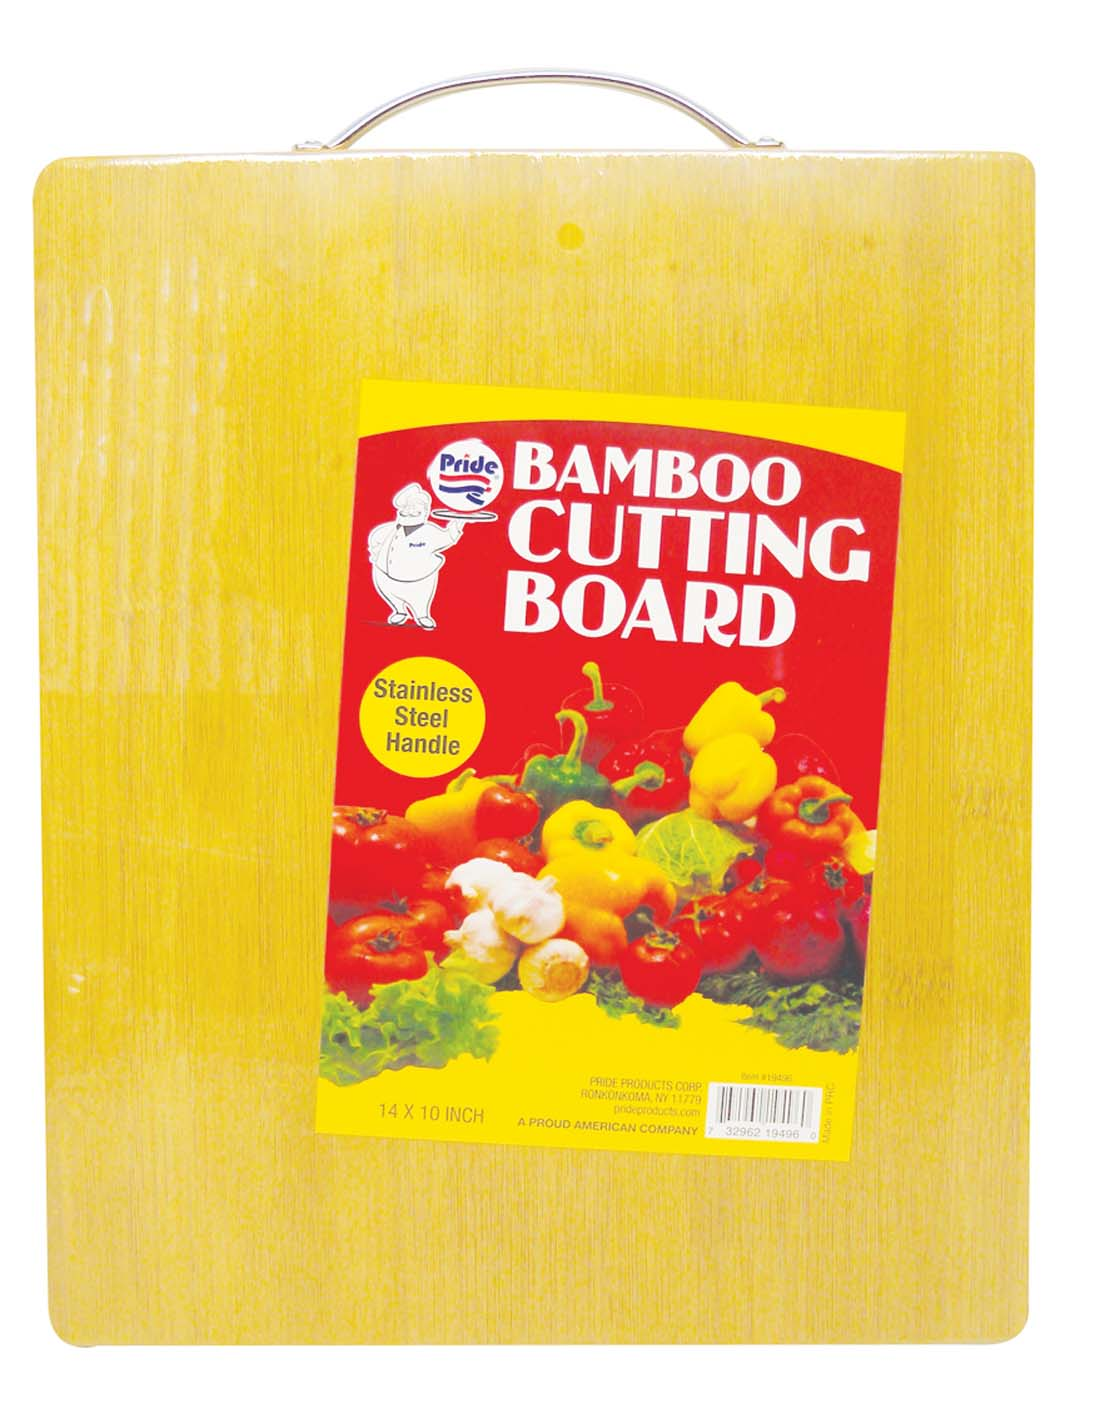 View BAMBOO CUTTING BOARD 14 X 10 INCH HEAVY DUTY WITH STAINLESS STEEL HANDLE